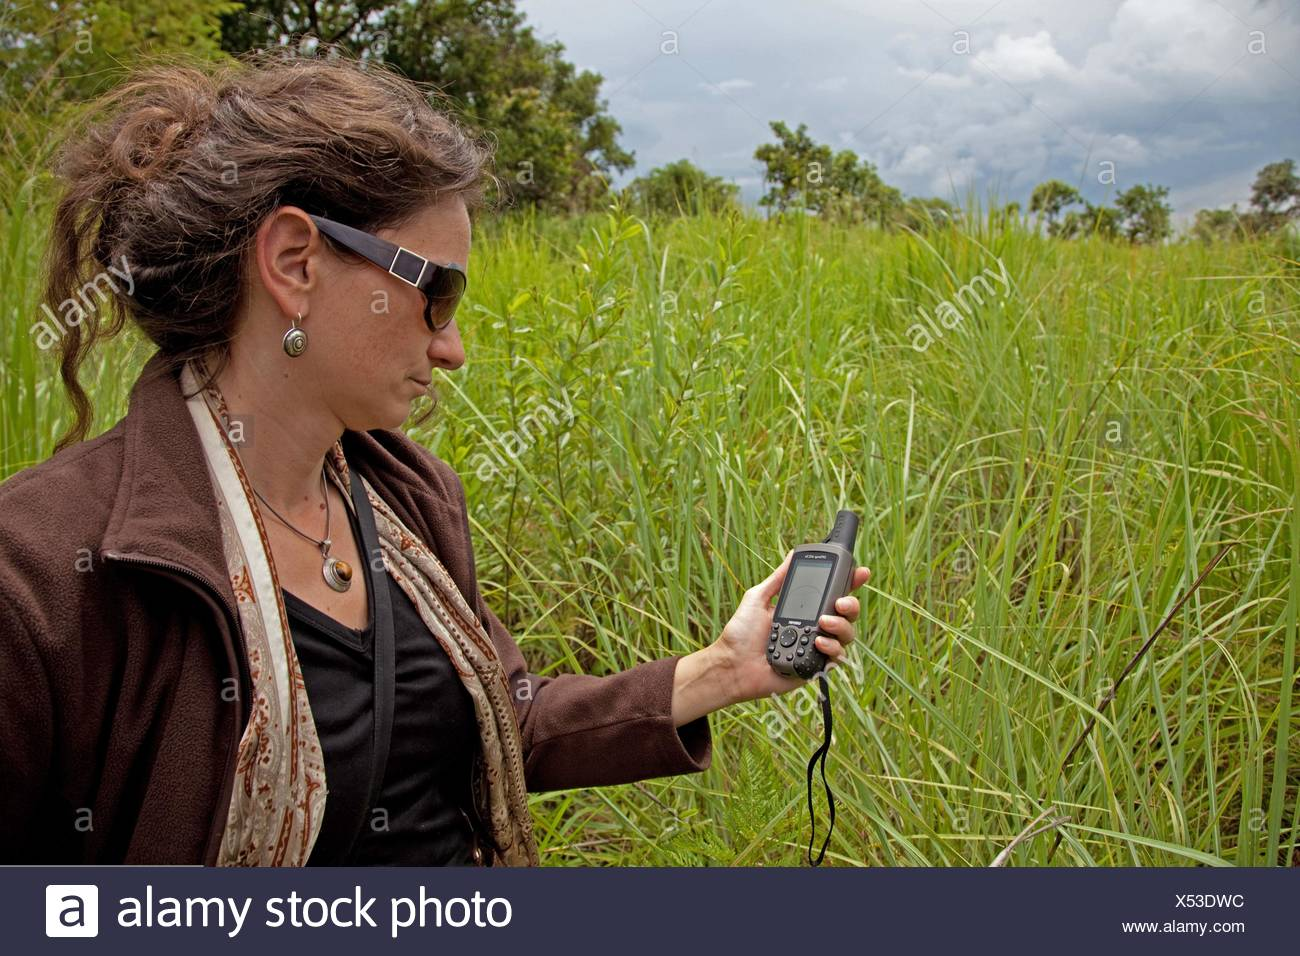 tourist orients herself with the help of a GPS computer at the 'National Parc de la Ruvubu' at the East of the country, Burundi, National Parc de la Ruvubu, Cankuzo - Stock Image